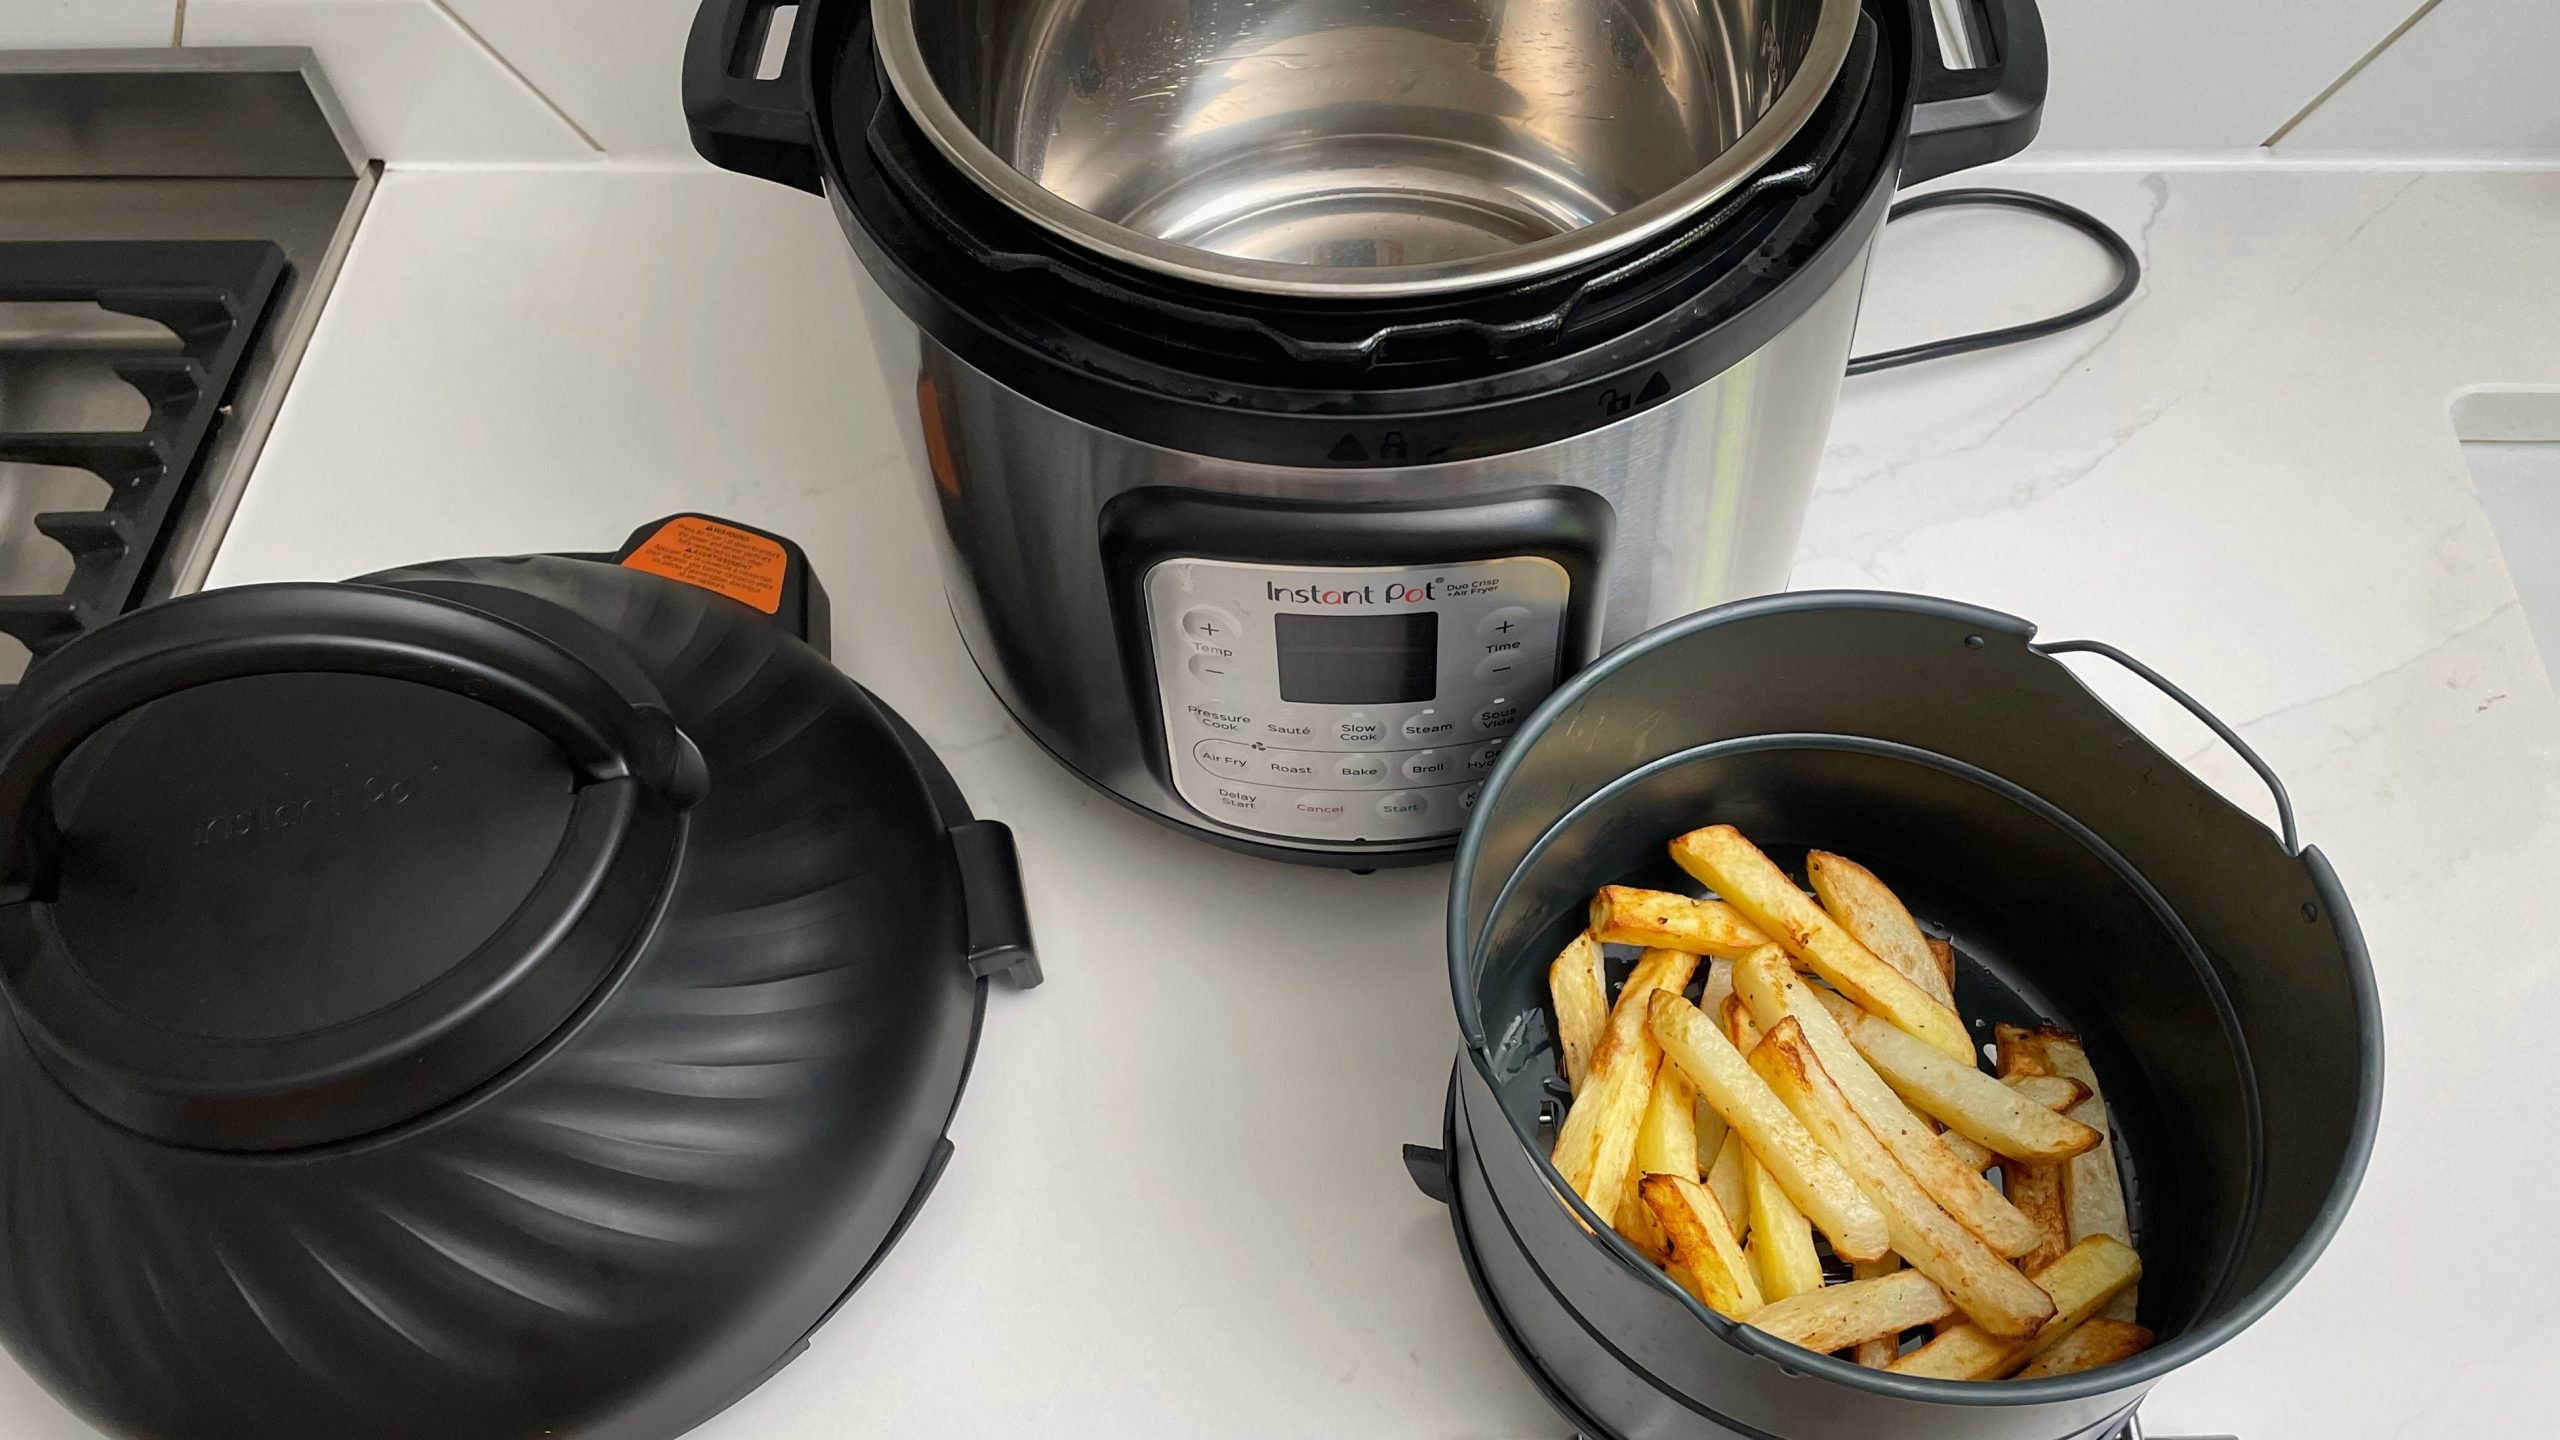 Instant Pot Duo Crisp & Air Fryer next to some fries that were cooked in it